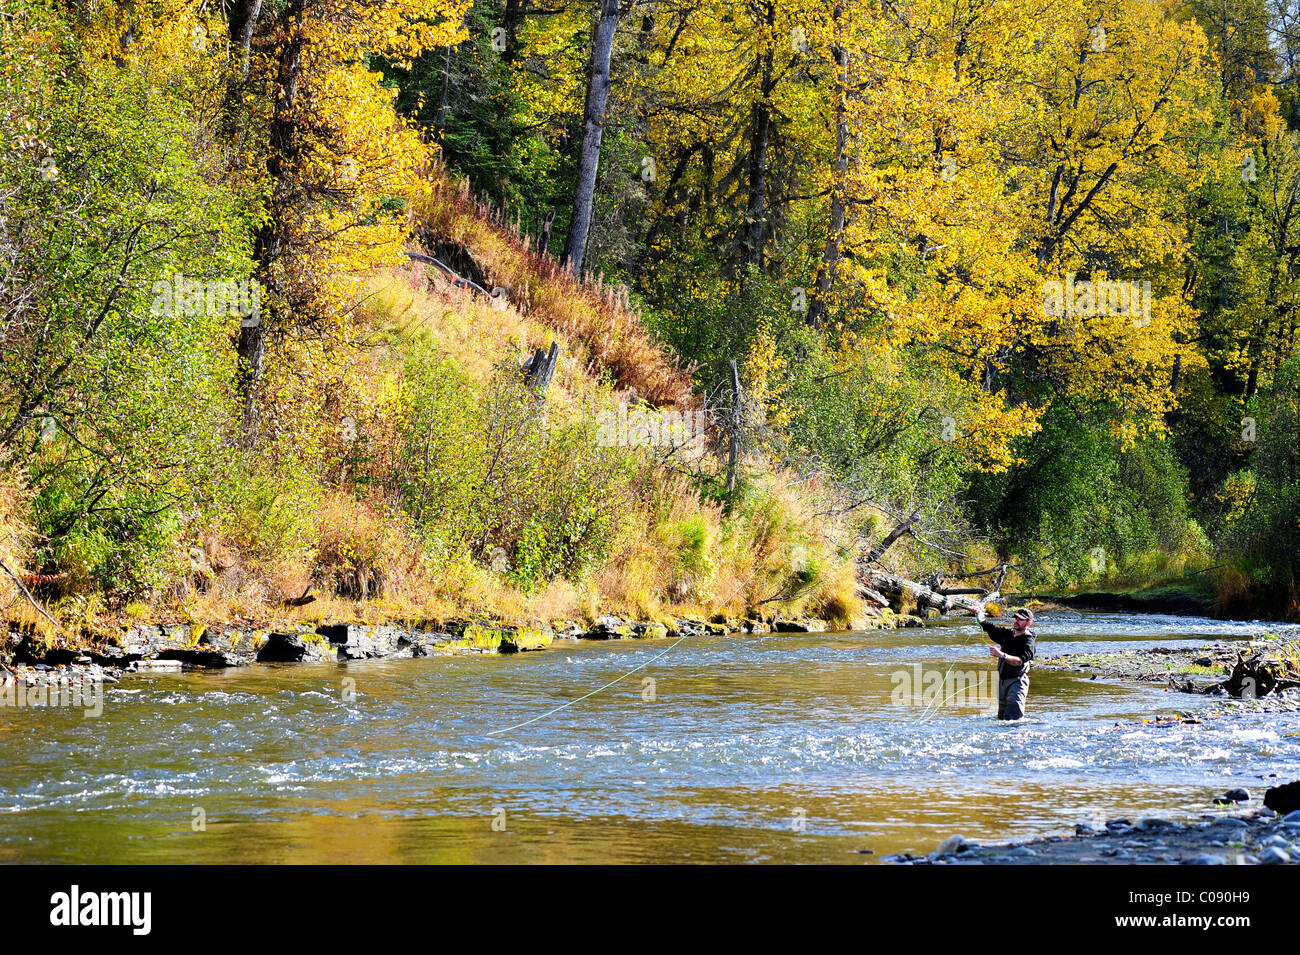 Flyfisherman casts for wild Steelhead on Deep Creek, Kenai Peninsula, Southcentral Alaska, Autumn - Stock Image